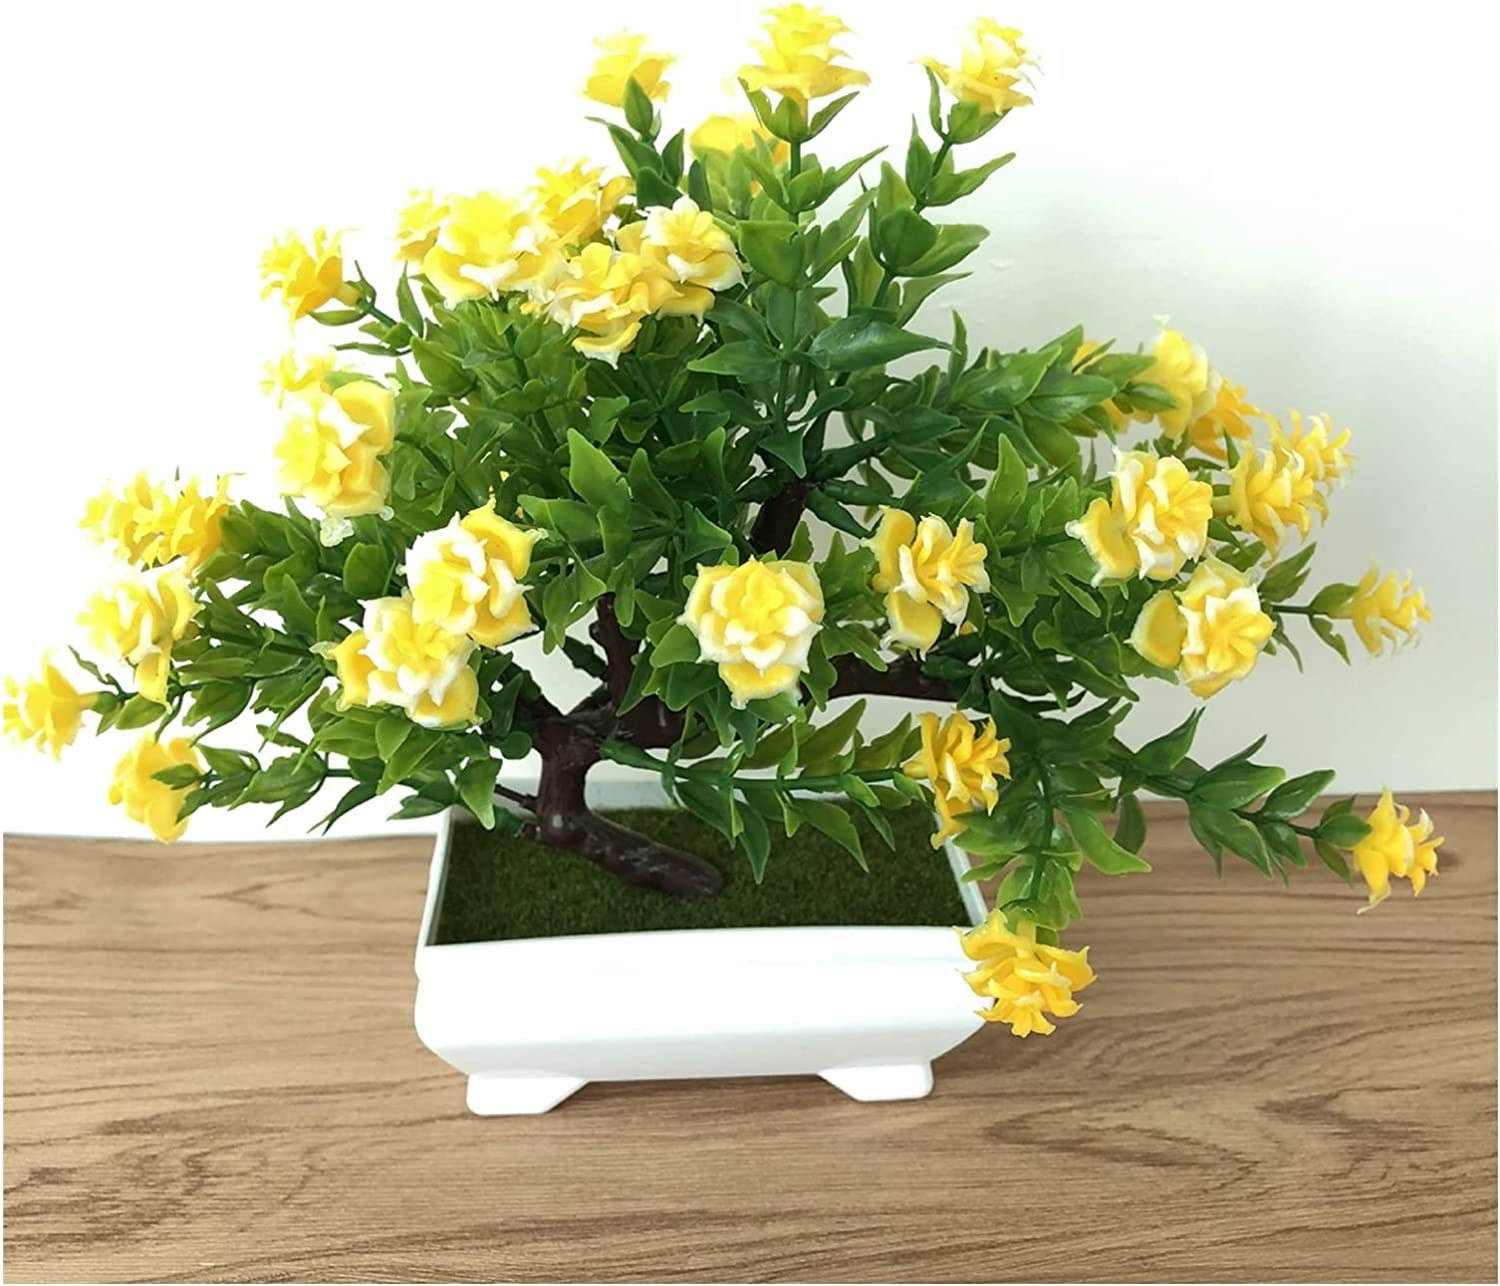 tongchuang Directly managed store Artificial Free shipping Flowers Fake Pot Plants We with